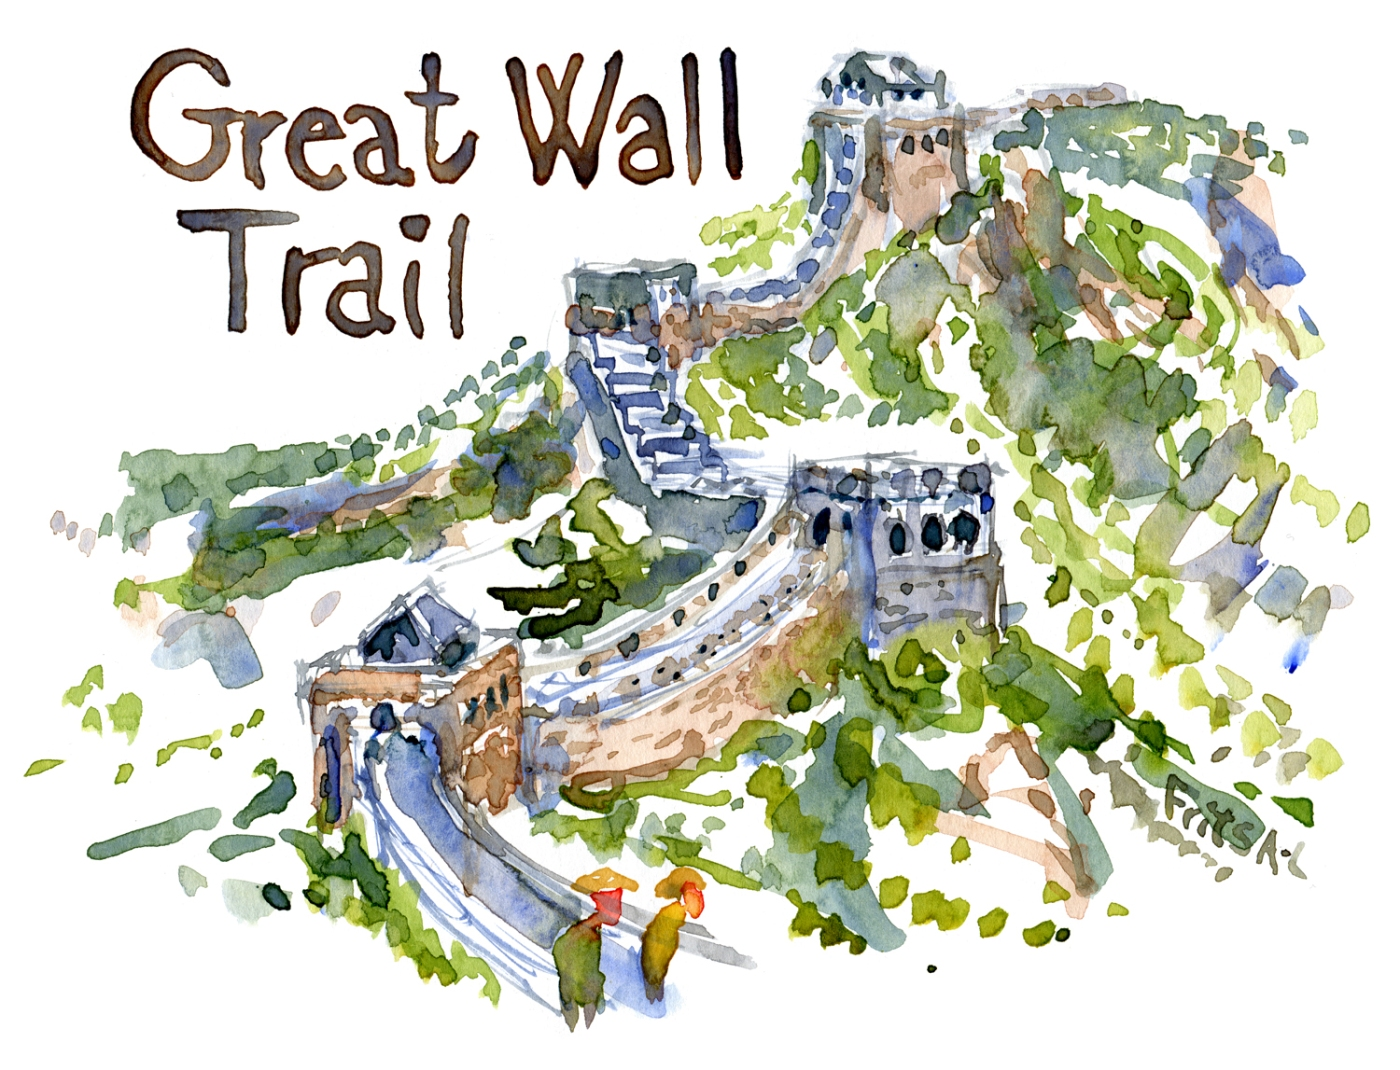 Watercolor of Chinese Great Wall